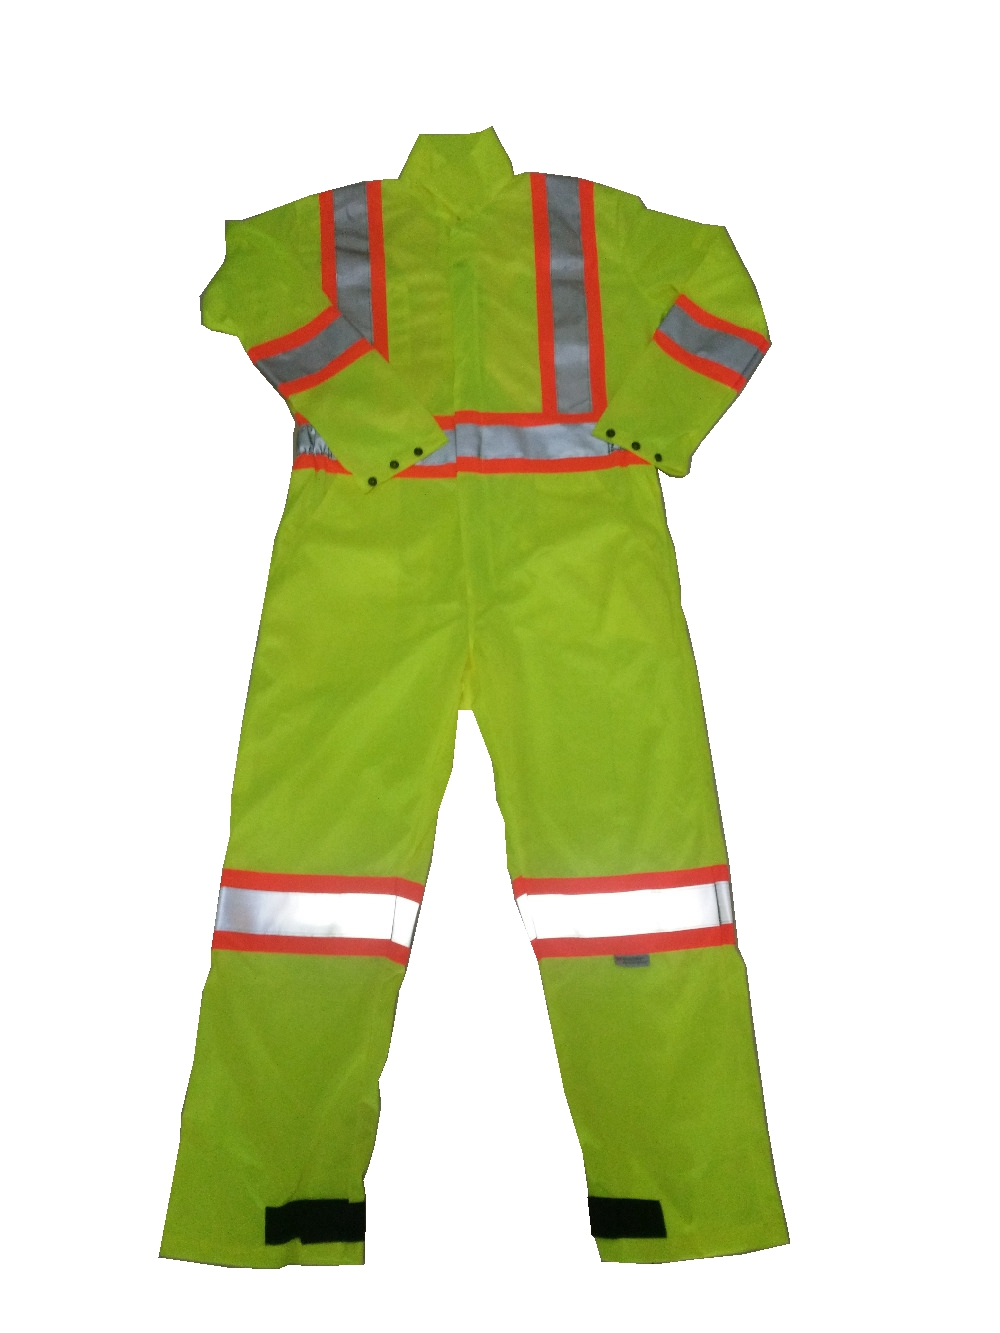 Fluorescence Yellow High Visibility Safety workwear Hi Viz Work Coat coverall workwear coveralls suits умница обучающая игра что такое радость